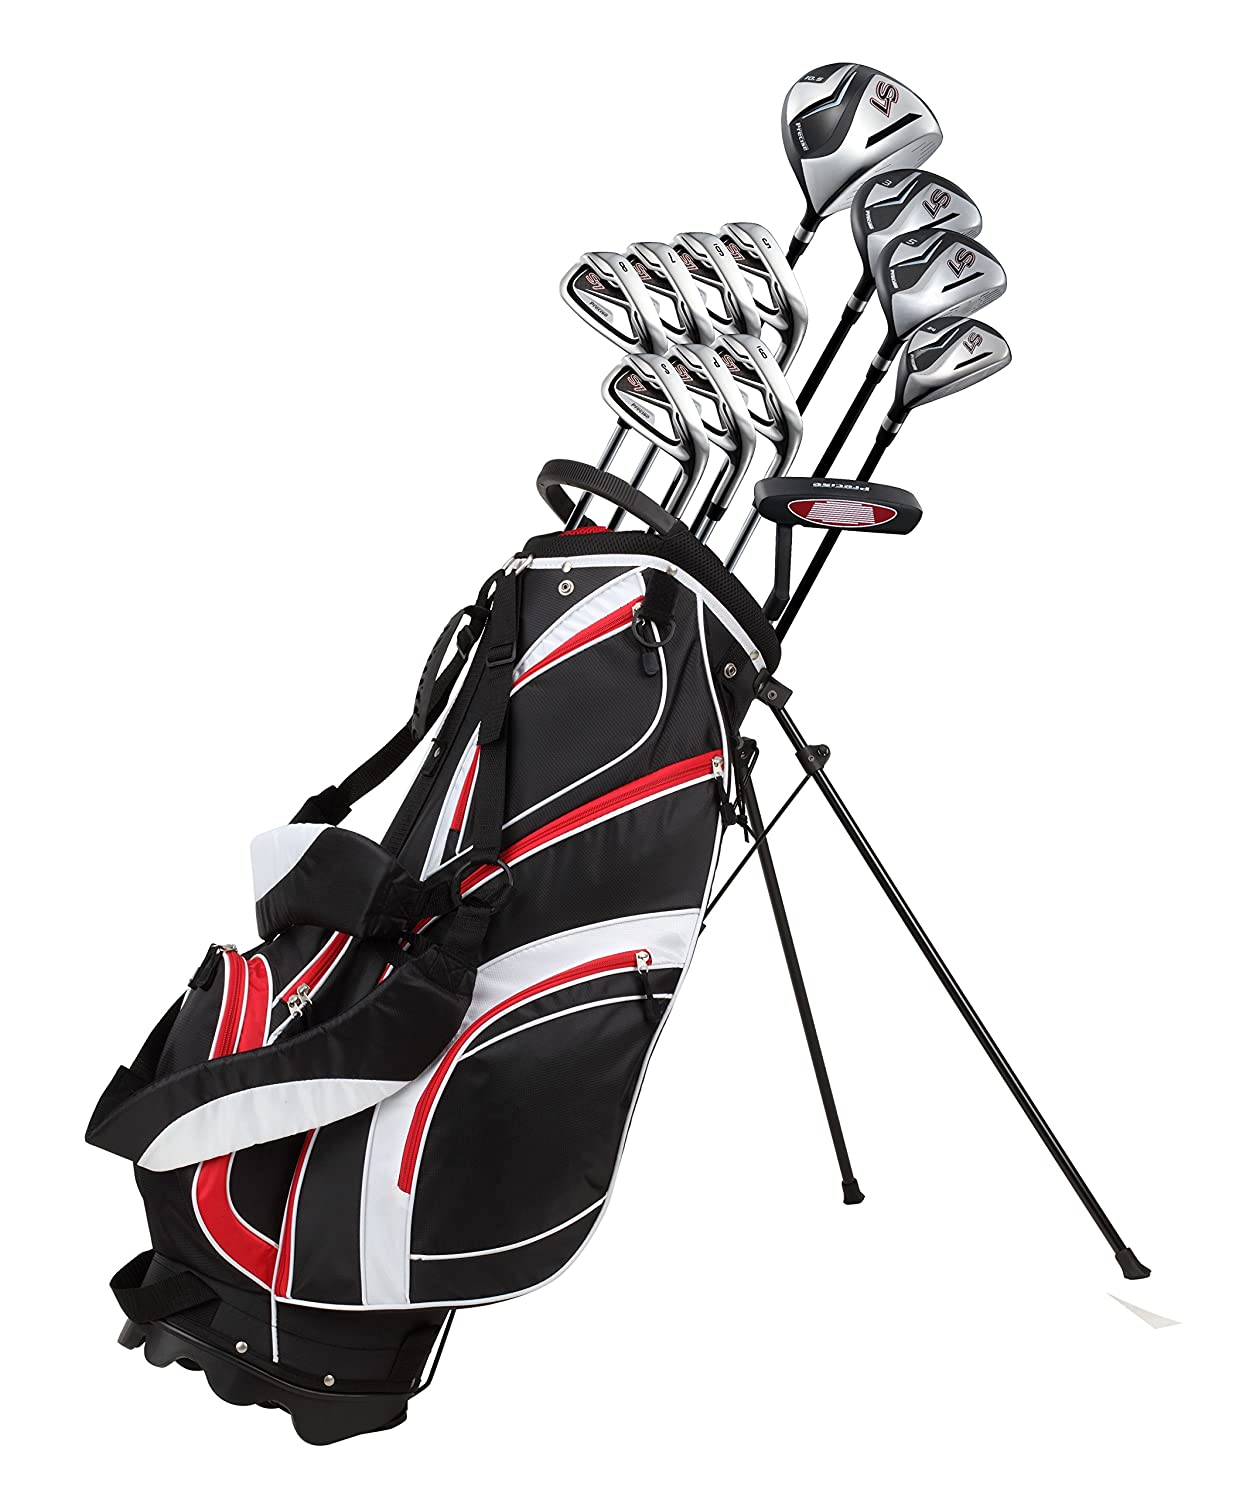 18 Piece Men's Complete Golf Club Package Set With Titanium Driver, #3 & #5 Fairway Woods, #4 Hybrid, 5-SW Irons, Putter, Stand Bag, 4 H/C's - Choose Color & Size